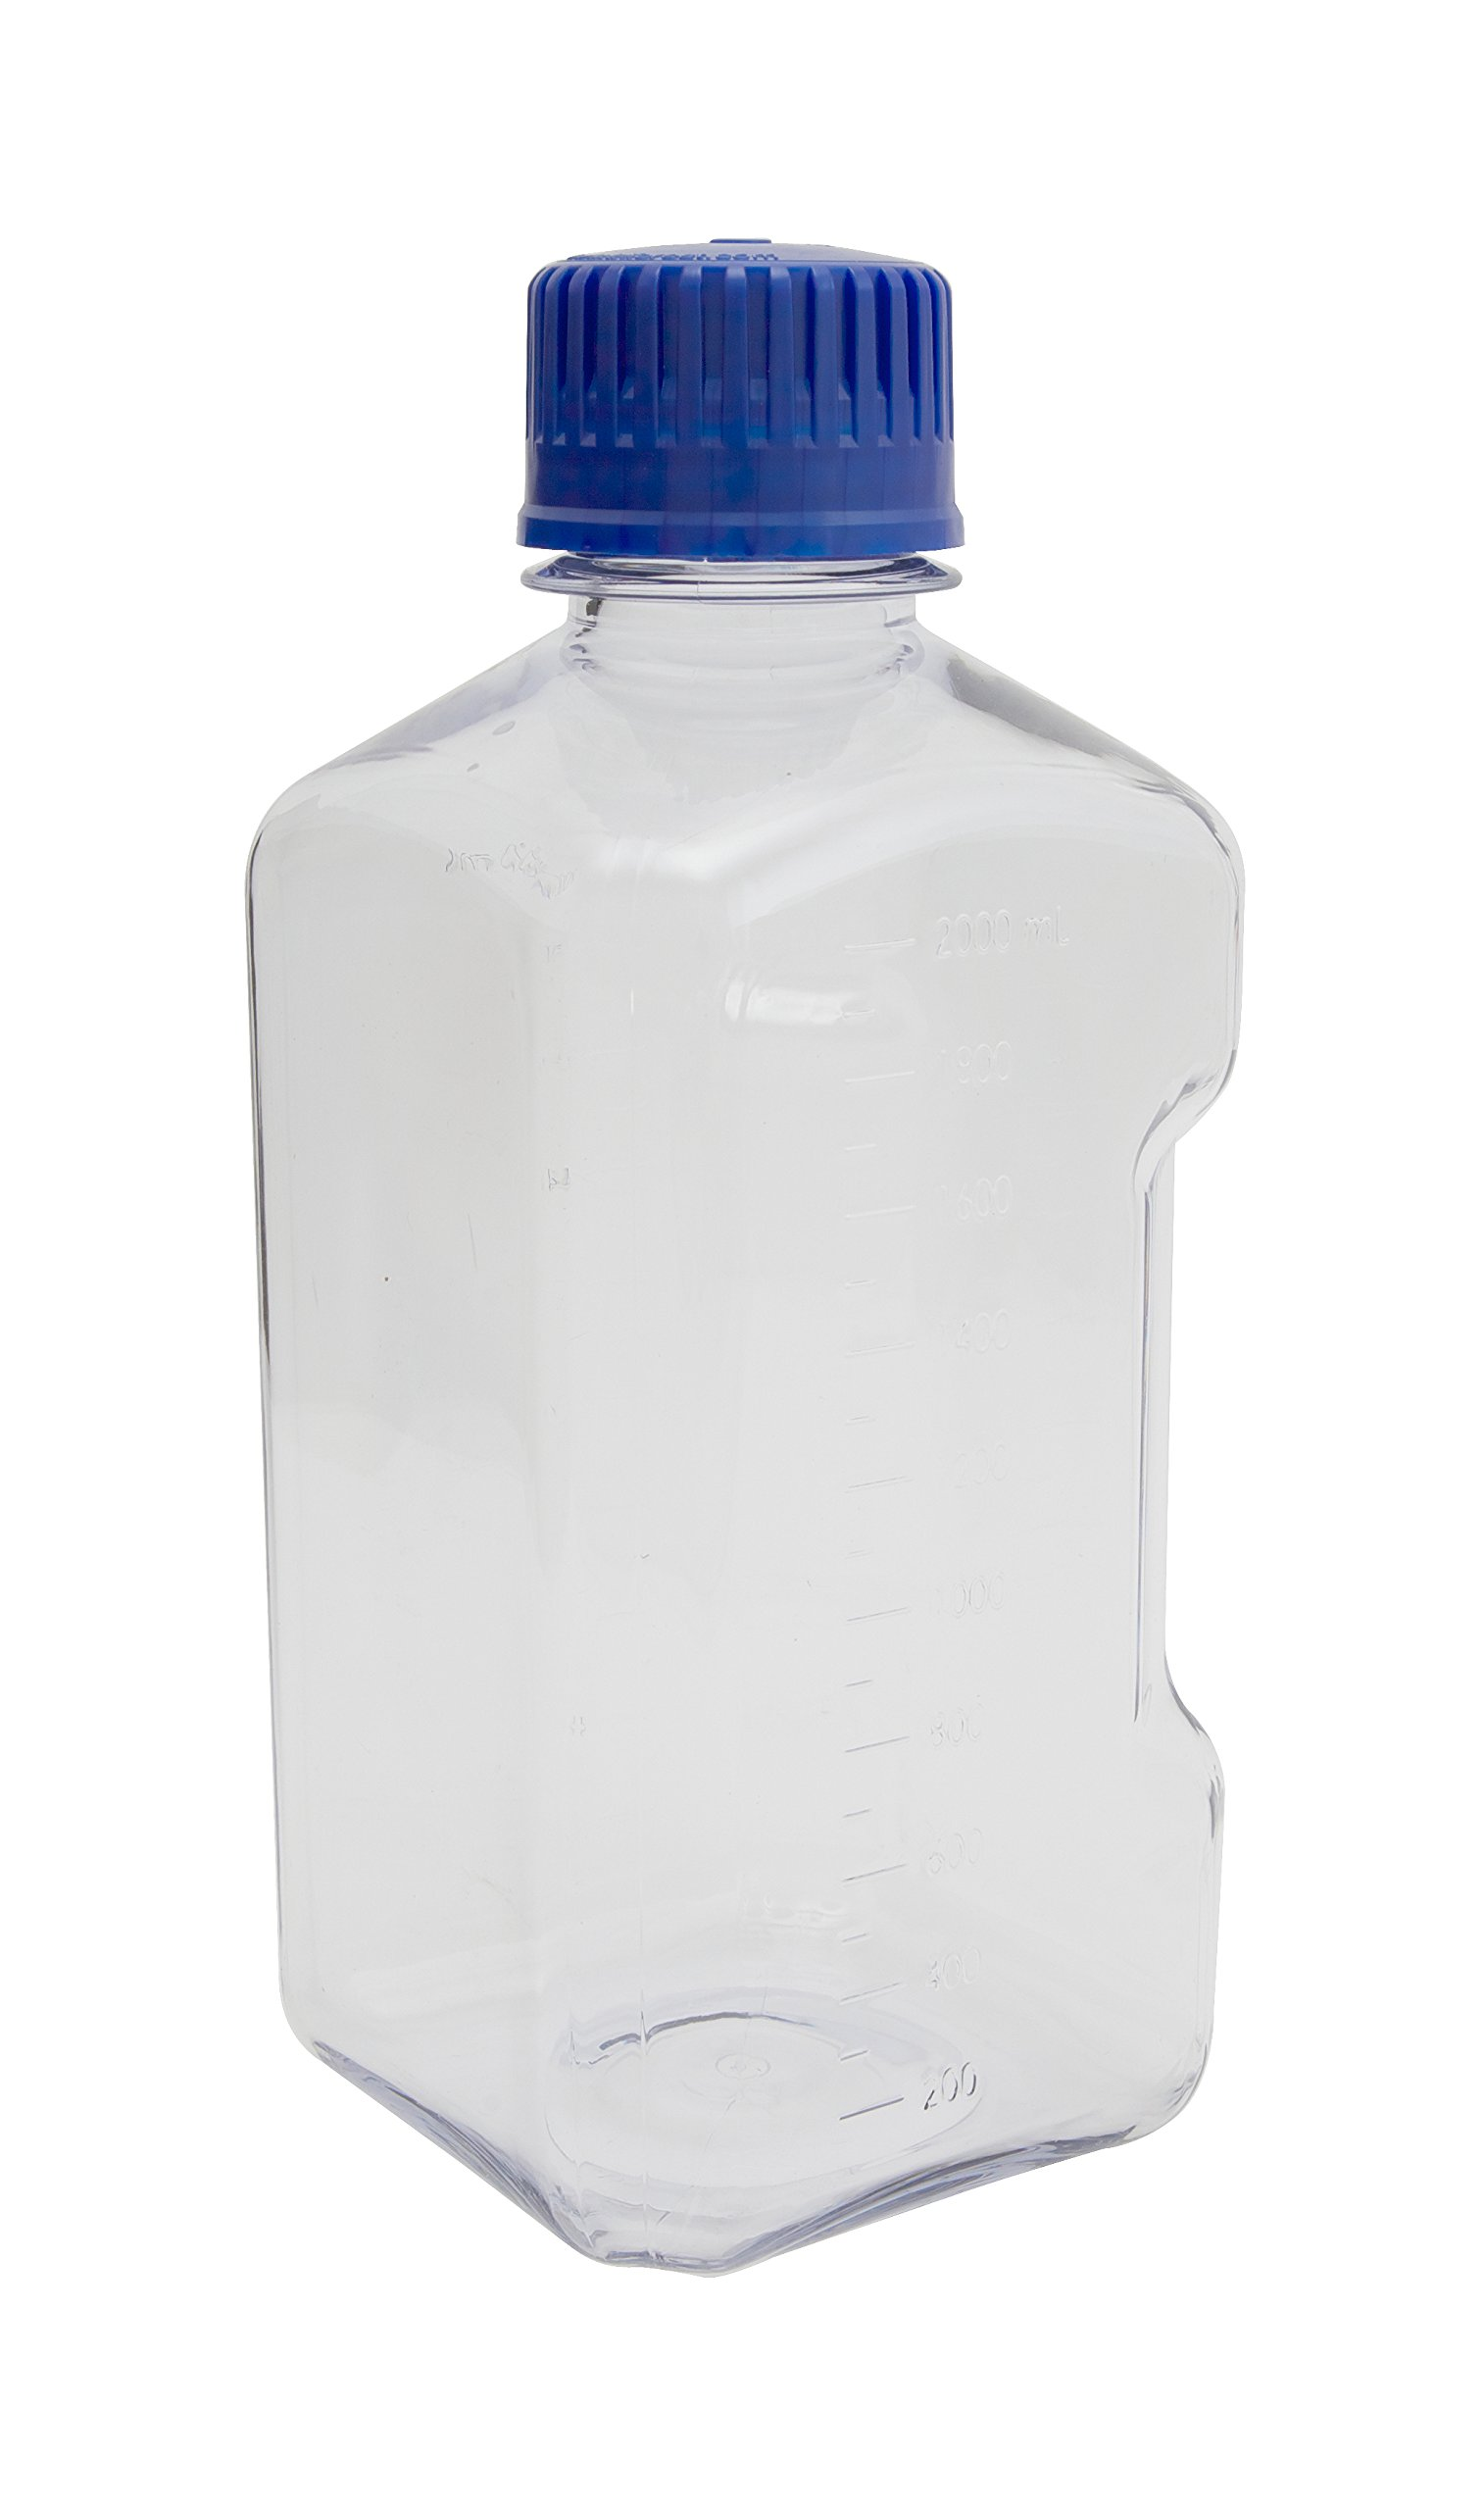 Dynalon 626284-2000 Polycarbonate Graduated Media Bottle with Polypropylene Closure, 2000mL Capacity